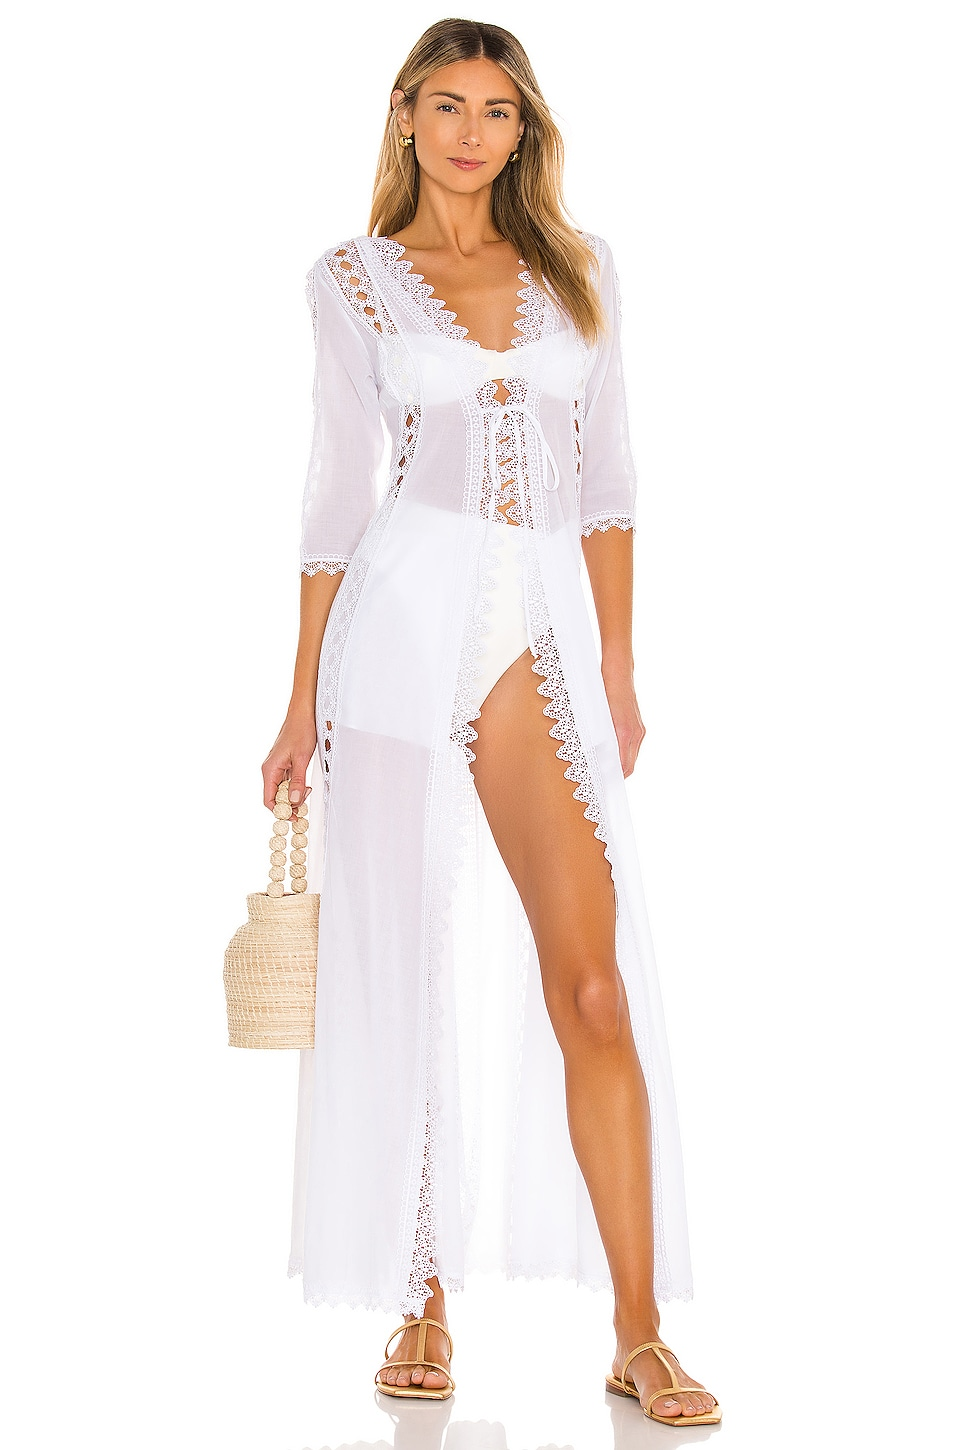 Charo Ruiz Ibiza Ali Jacket in White